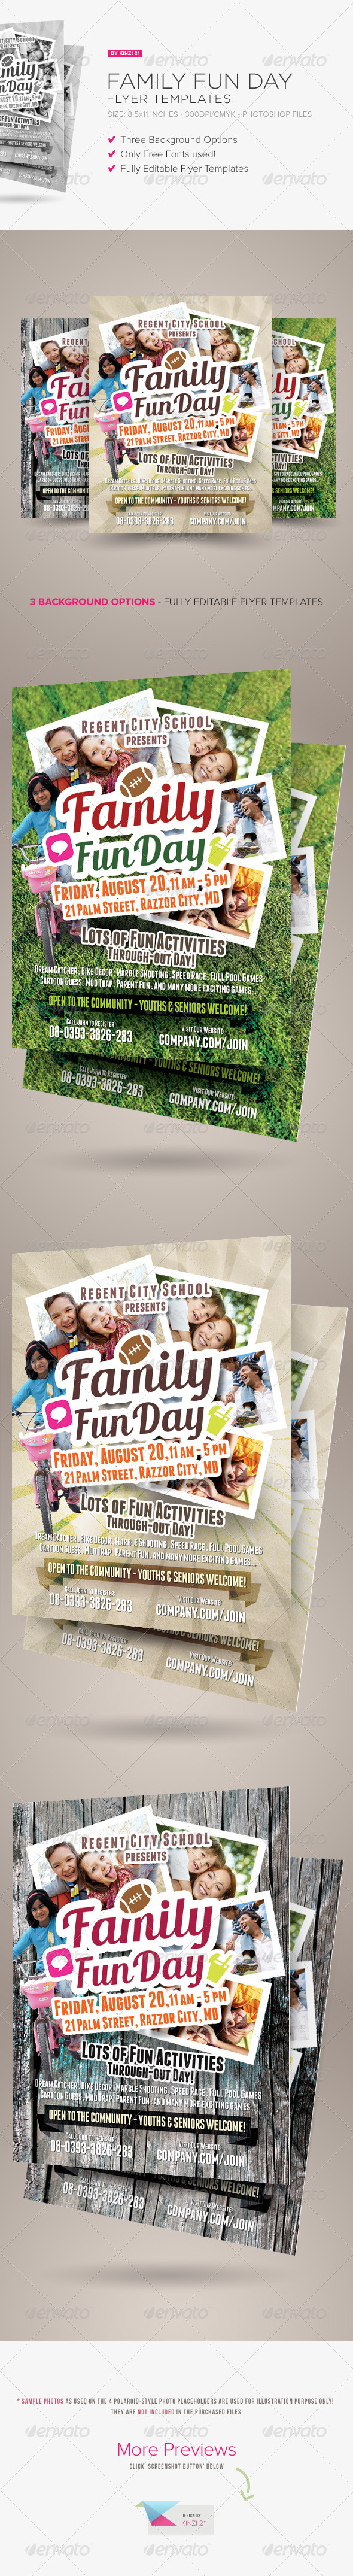 GraphicRiver Family Fun Day Flyers 8775905